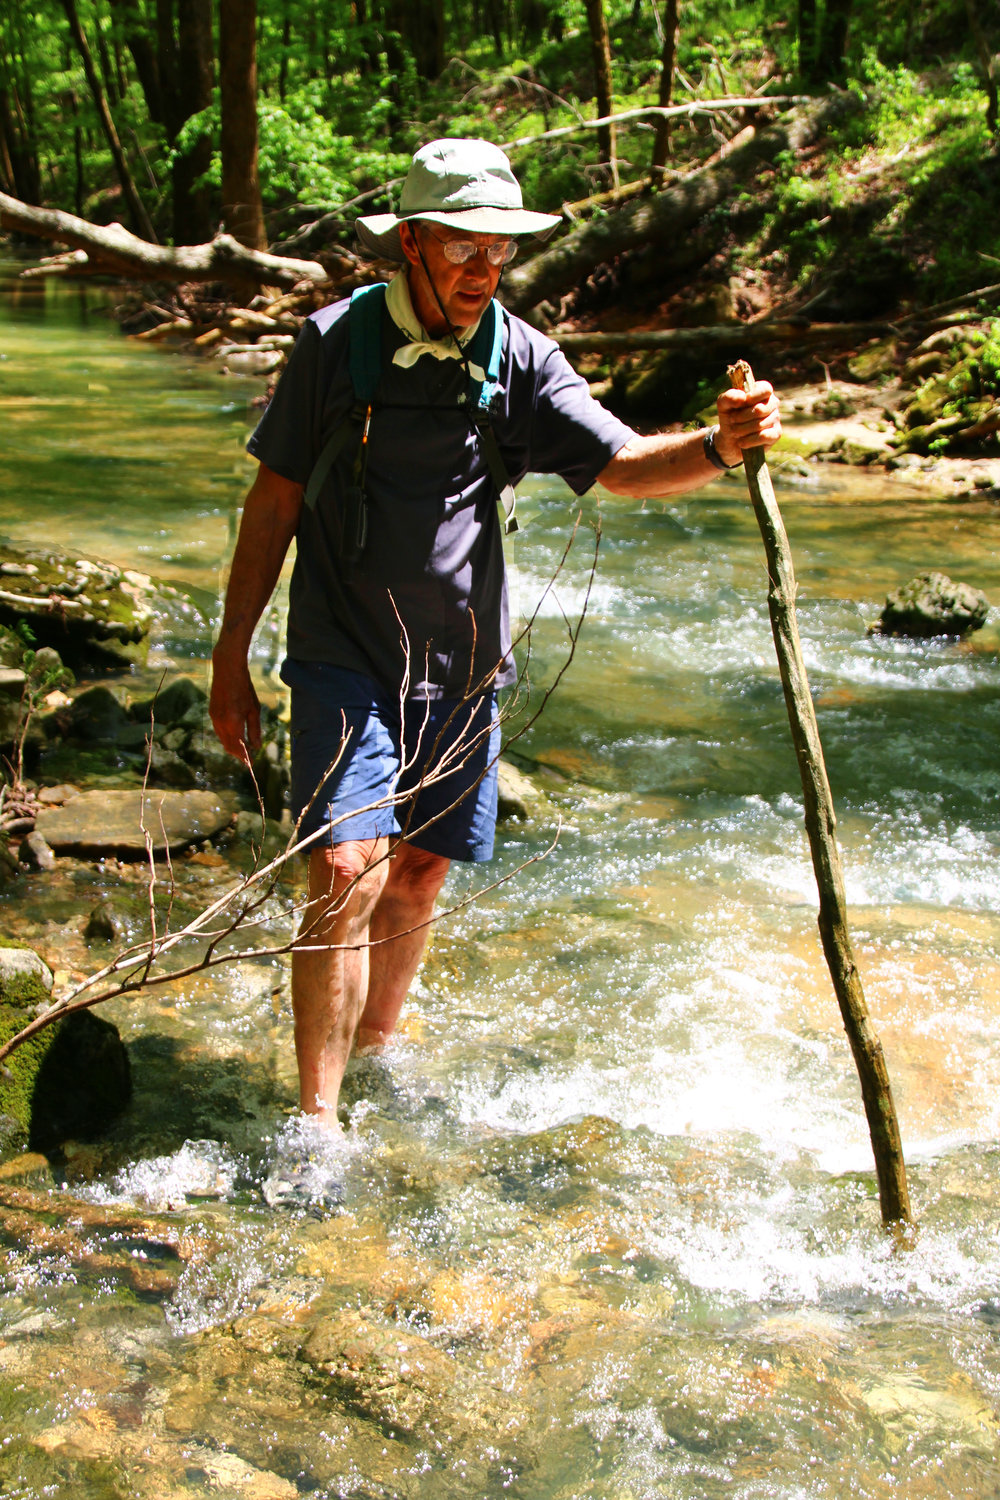 Top: Bill Steward casting a line in the Buffalo River. Below: Bill Steward hiking up Panther Creek en route to Indian Rockhouse.